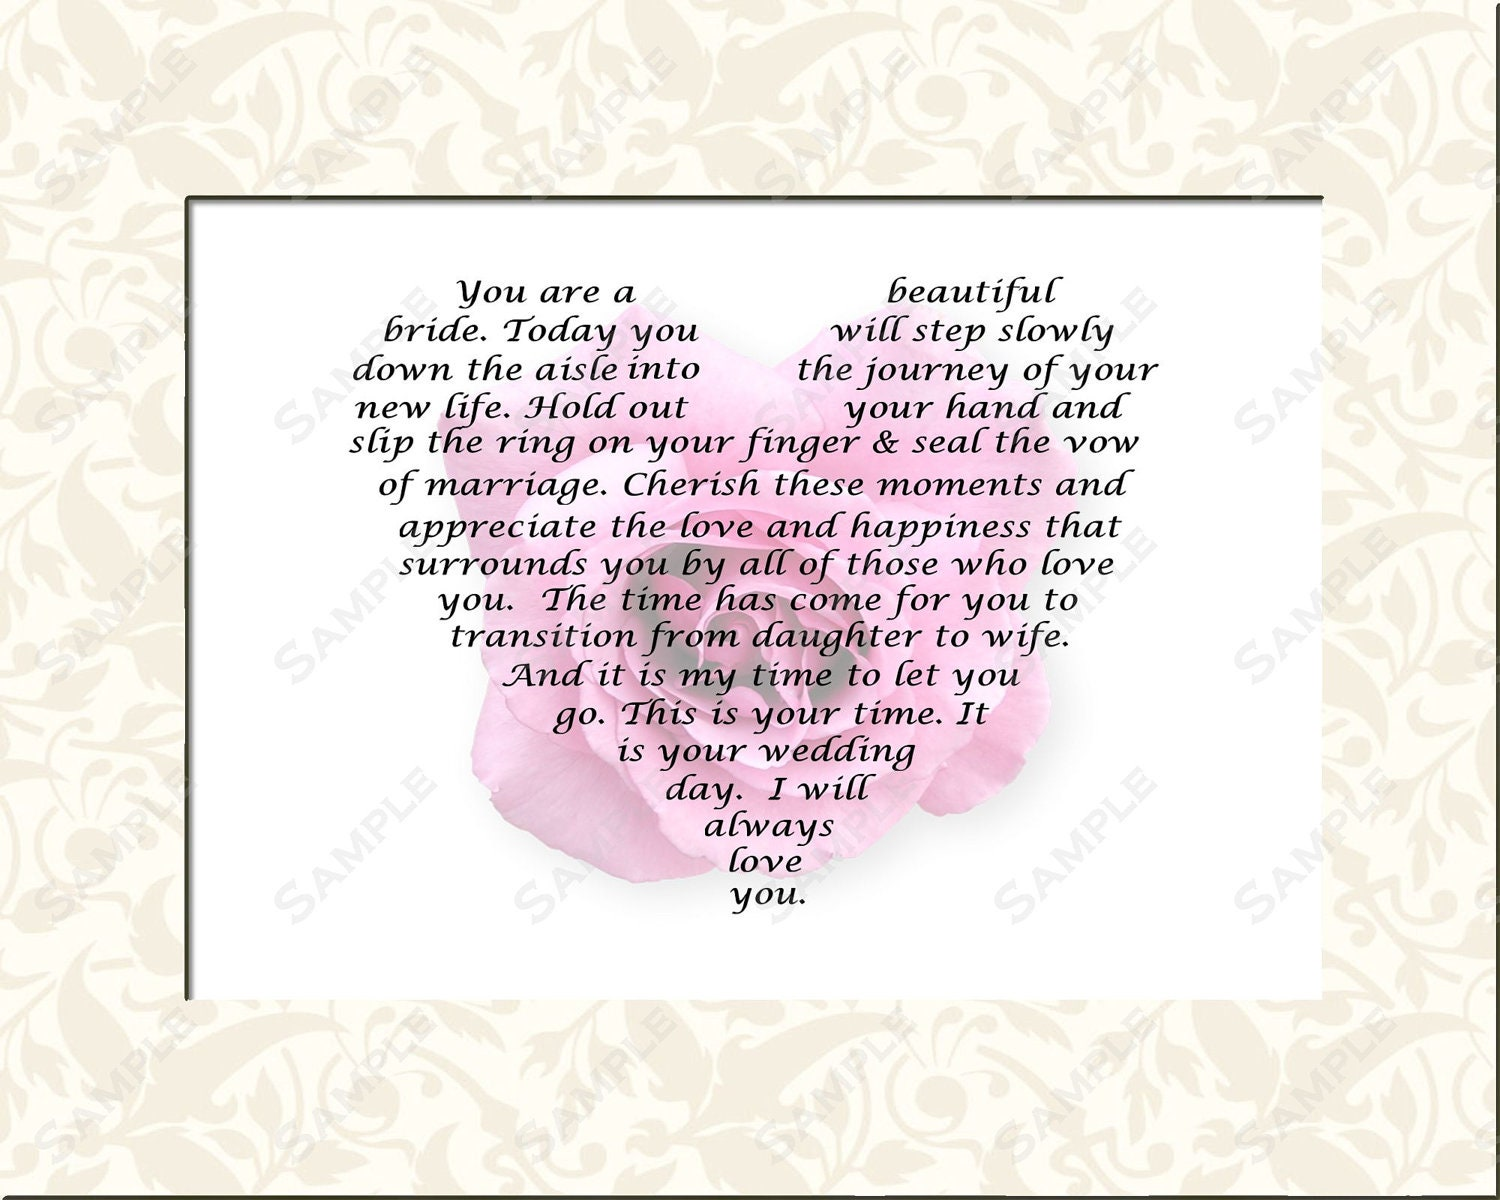 Gift For Bride From Bridesmaids Day Of Wedding : Personalized Bridal Gift for Wedding Day Gift Poem from Mom or